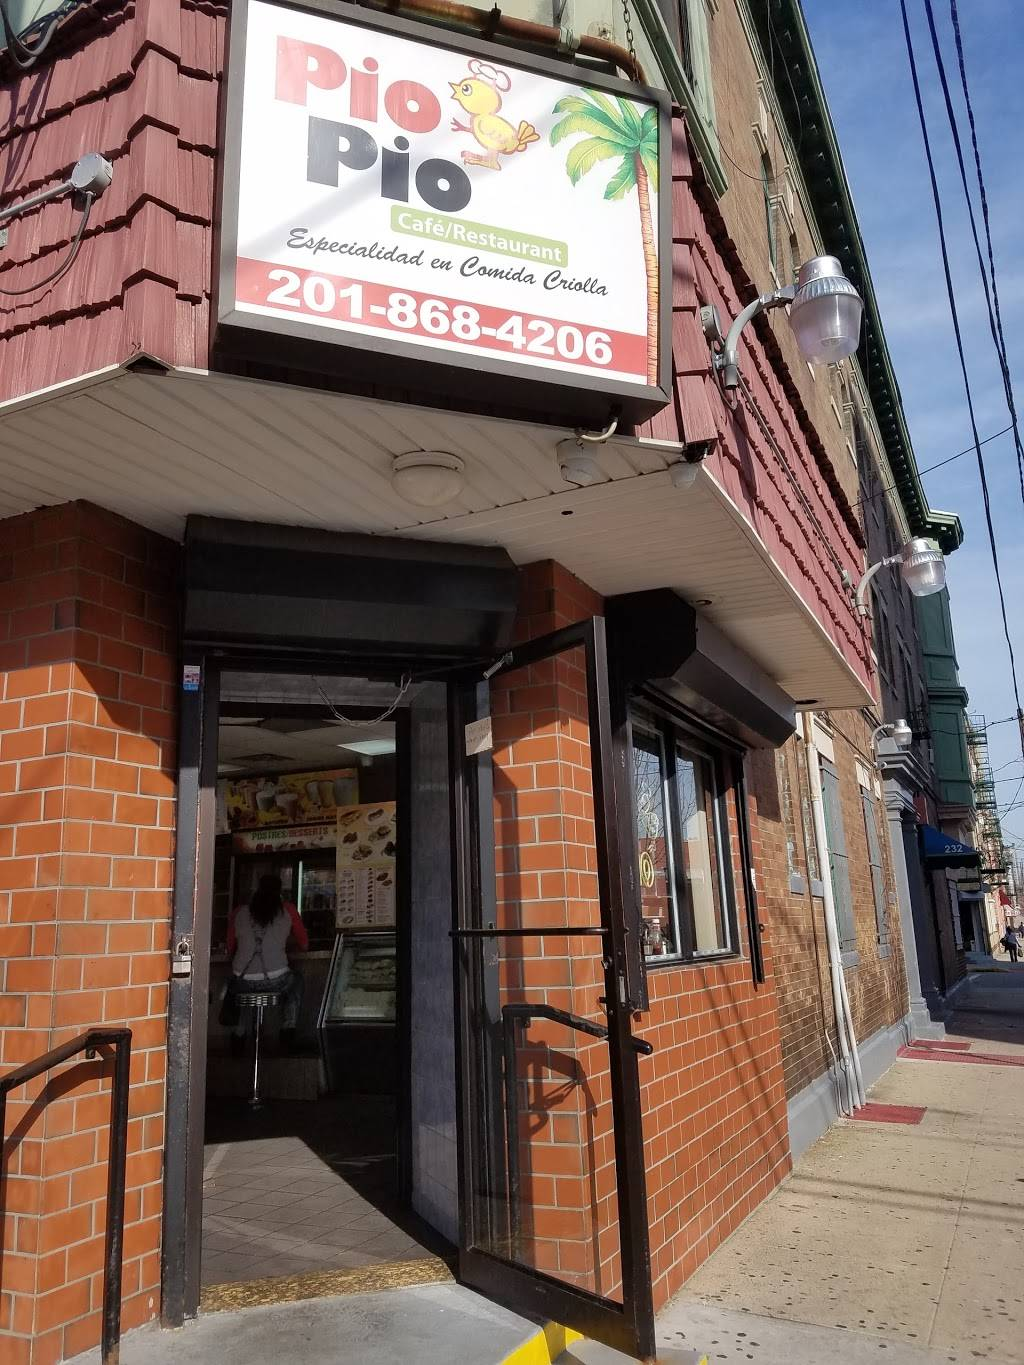 Pio Pio Café & Restaurant | restaurant | 6300 Hudson Ave, West New York, NJ 07093, USA | 2018684206 OR +1 201-868-4206